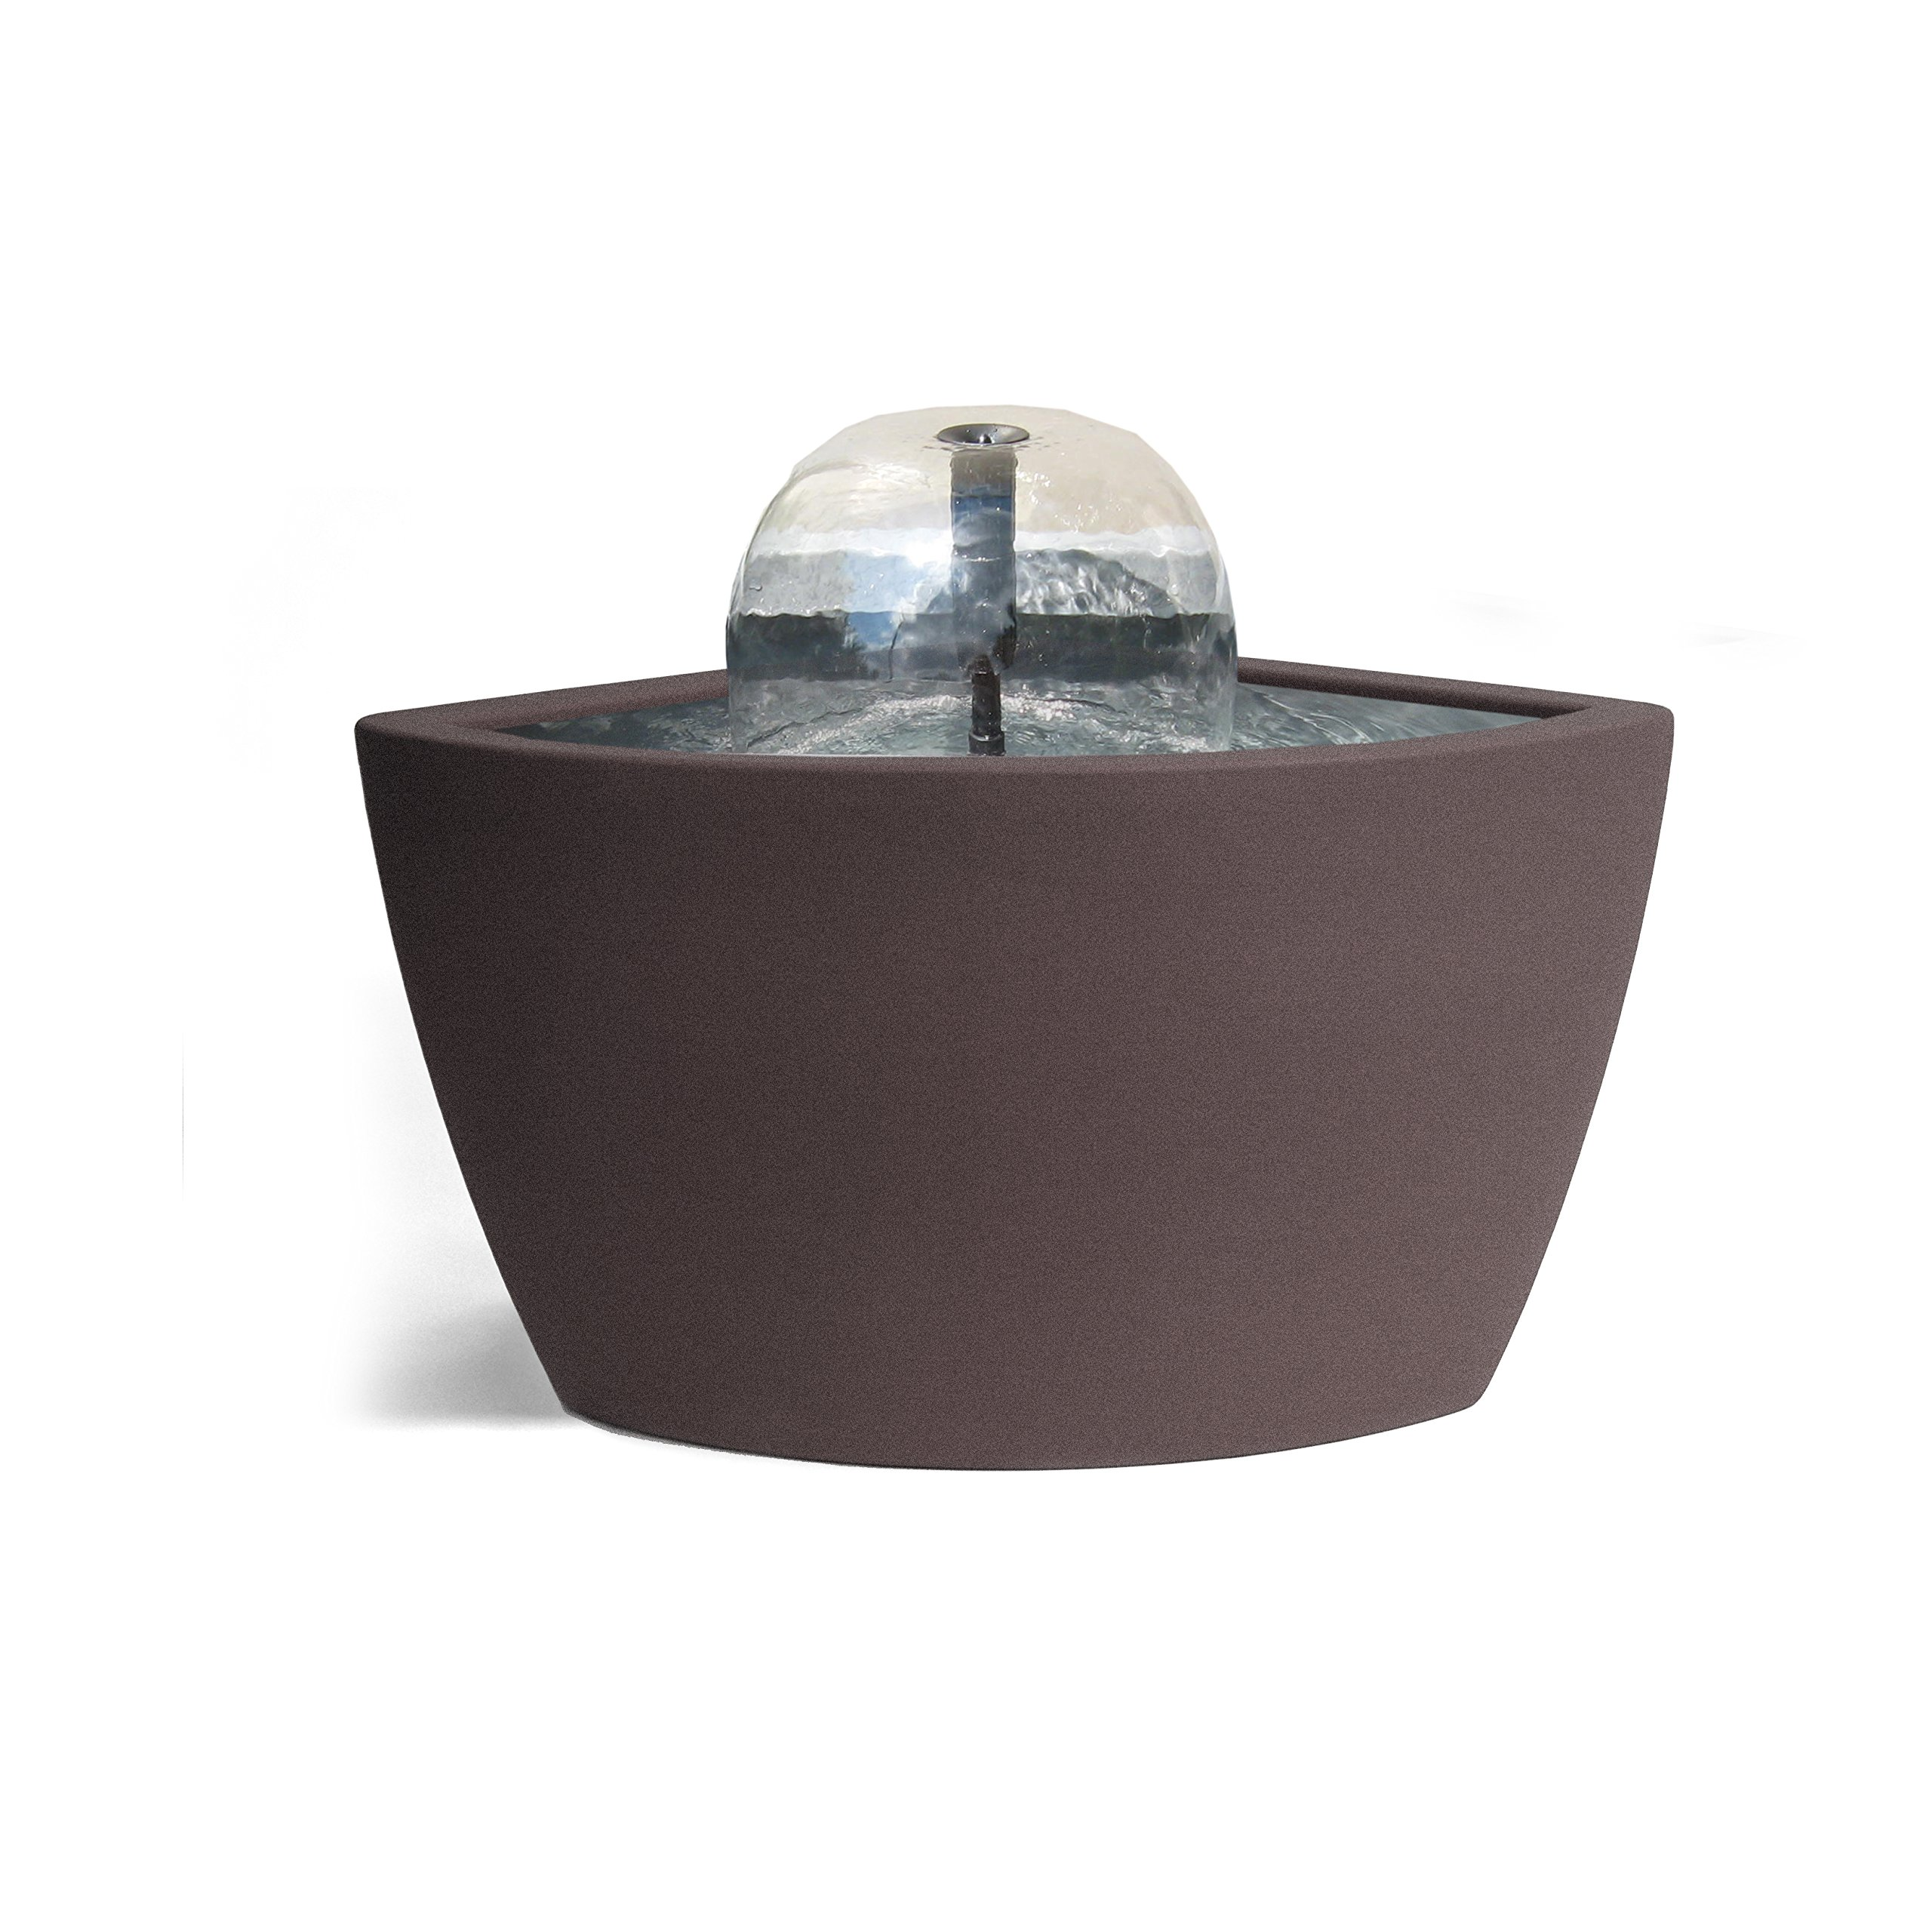 Algreen 36312 Hampton Corner Pond Kit Fountain with Light, Brownstone by Algreen